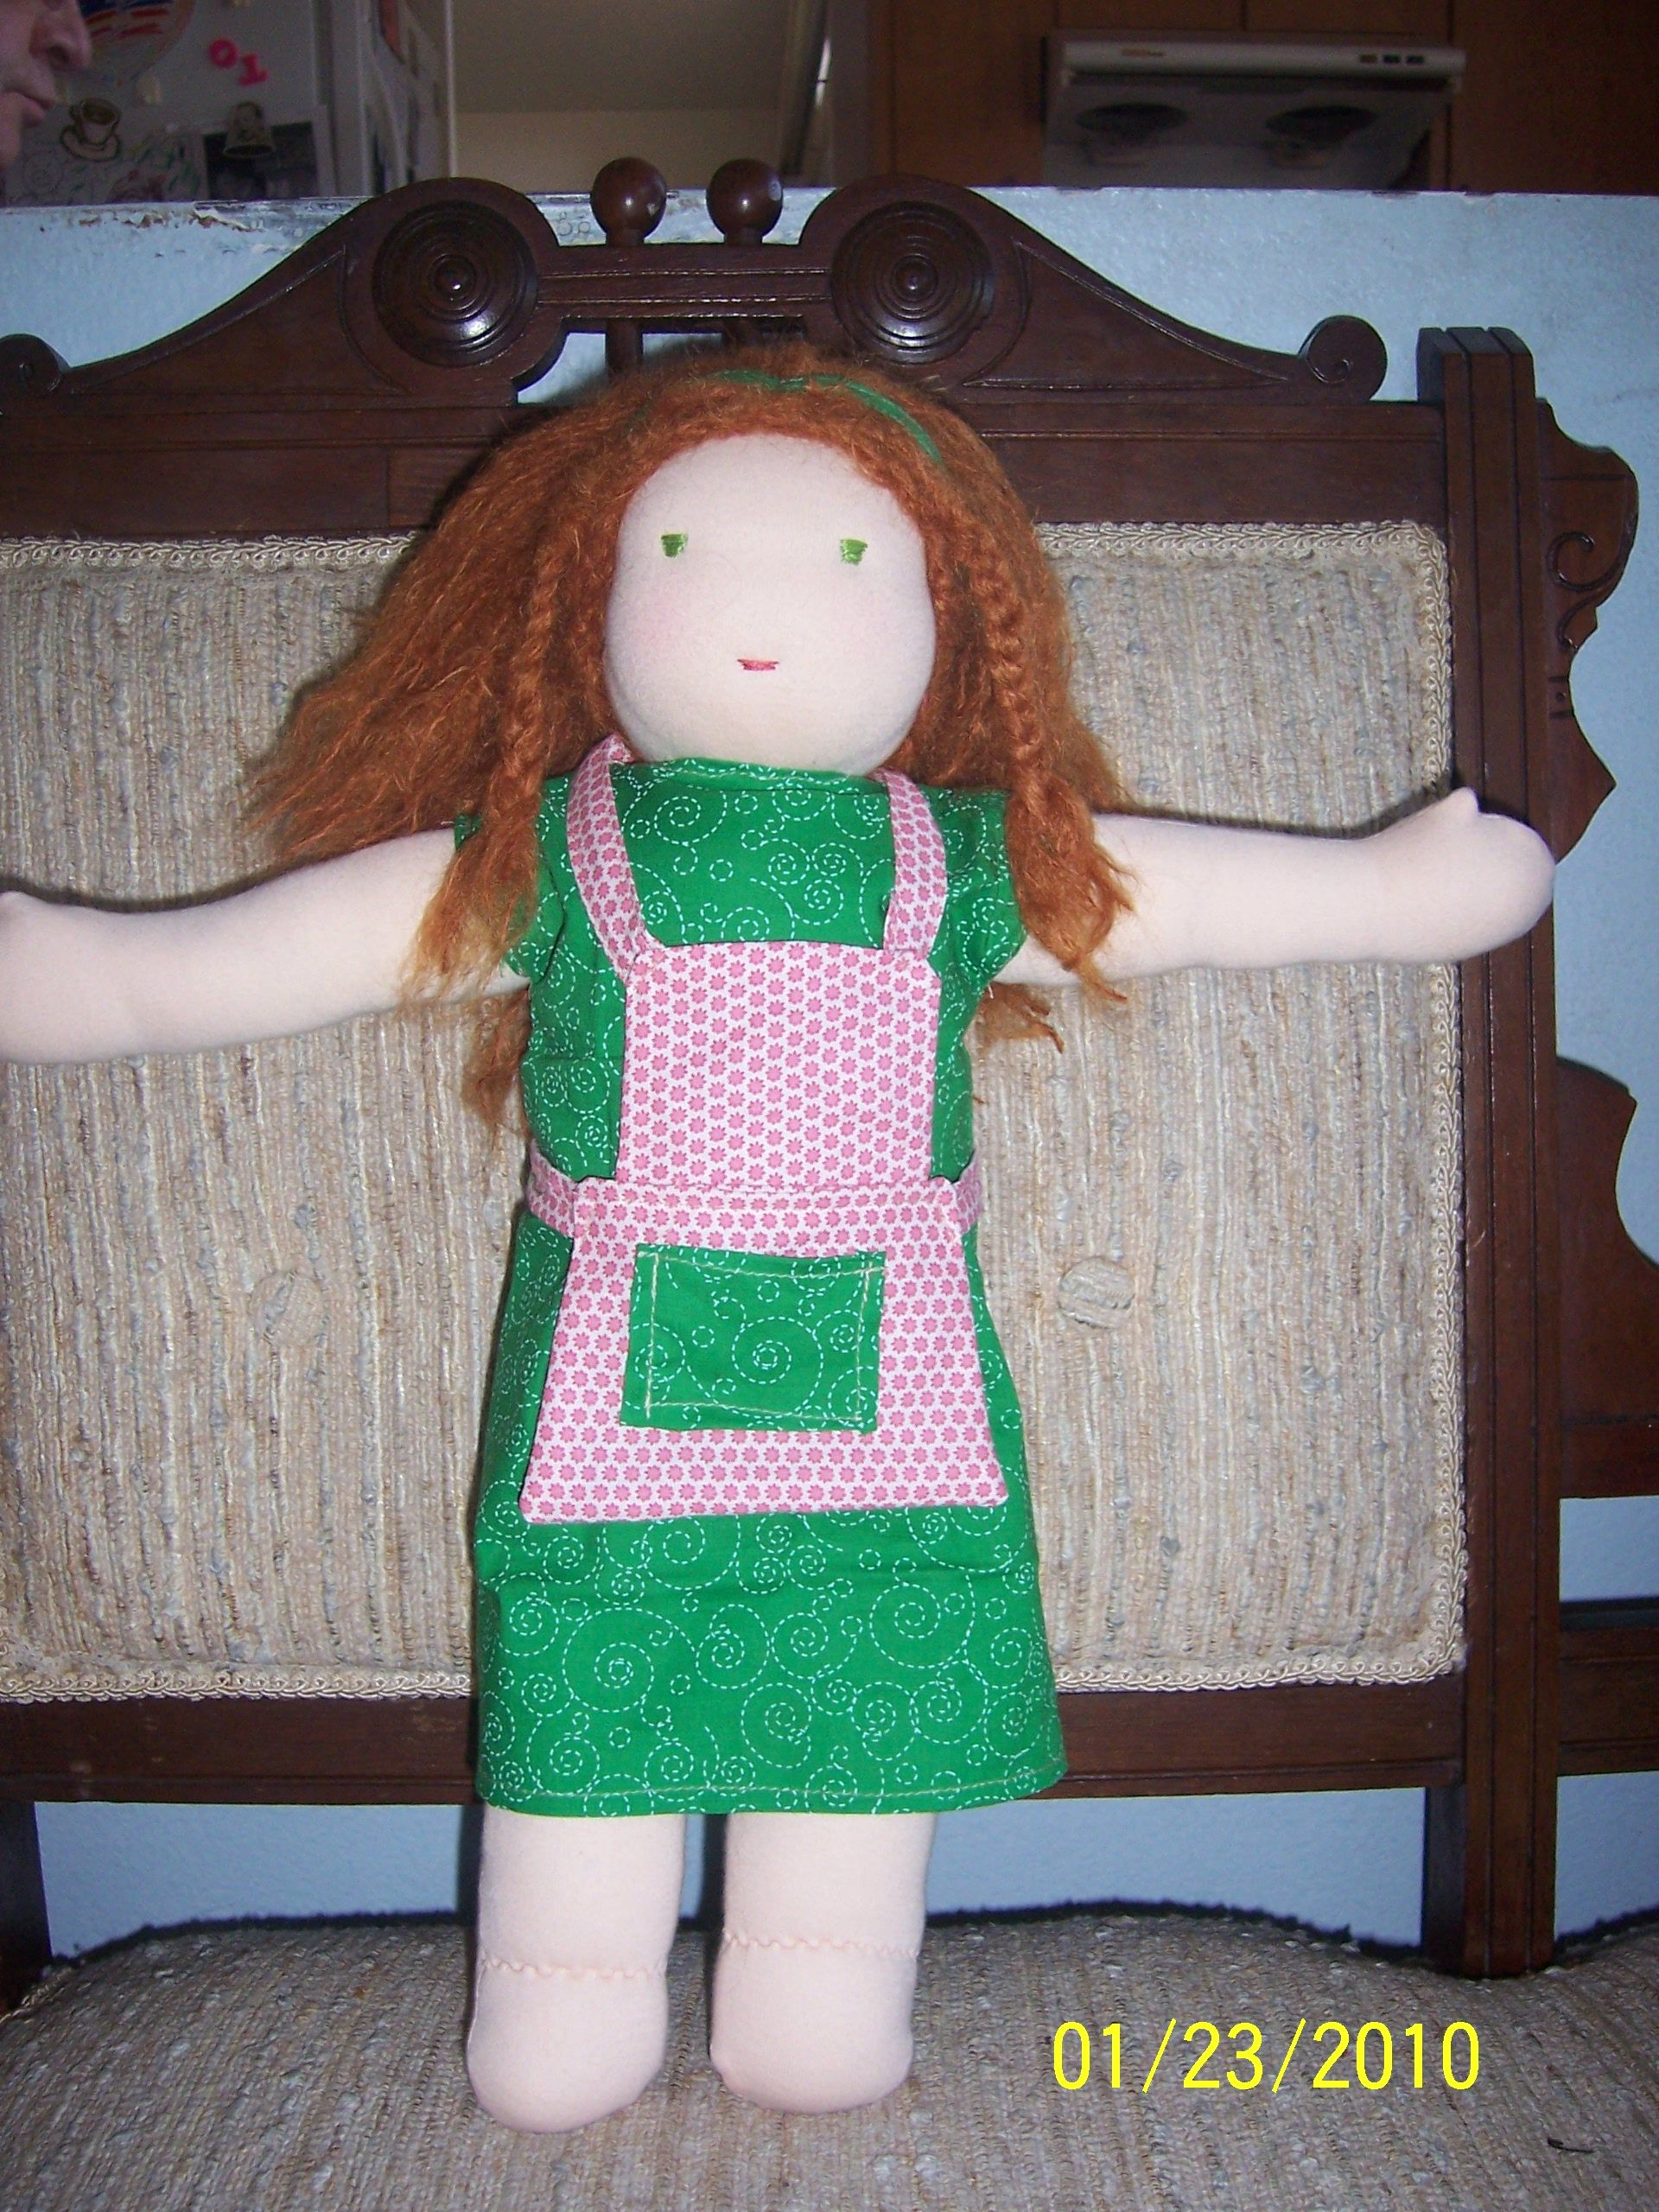 verano preschool fiona waldorf doll now living at verano preschool on the cus of uci waldorf crafts 659